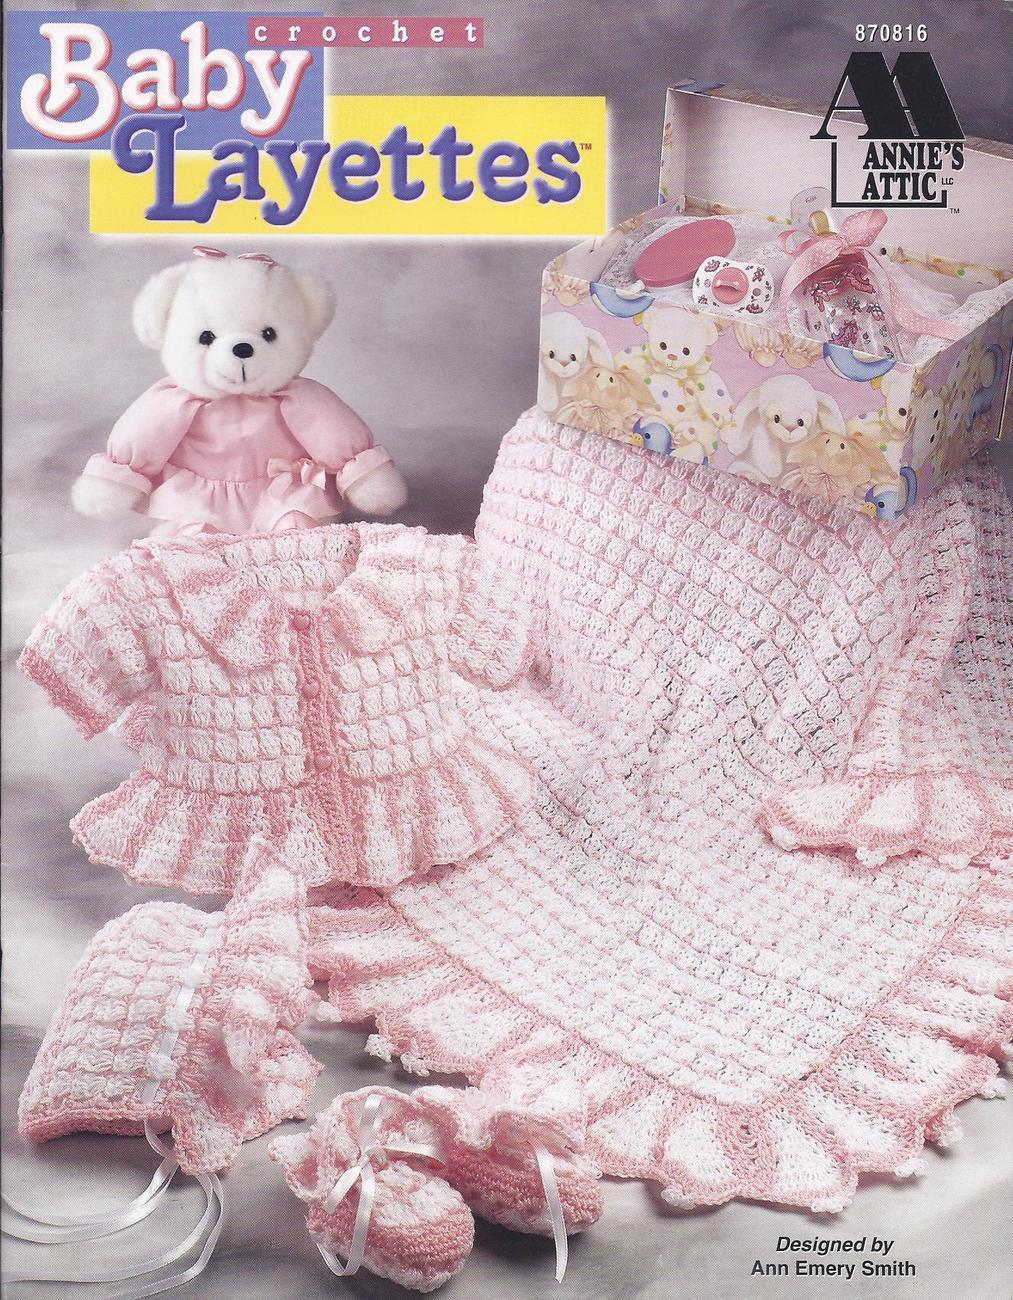 Annies Attic Crochet Pattern (1990s): 53 listings - Bonanza